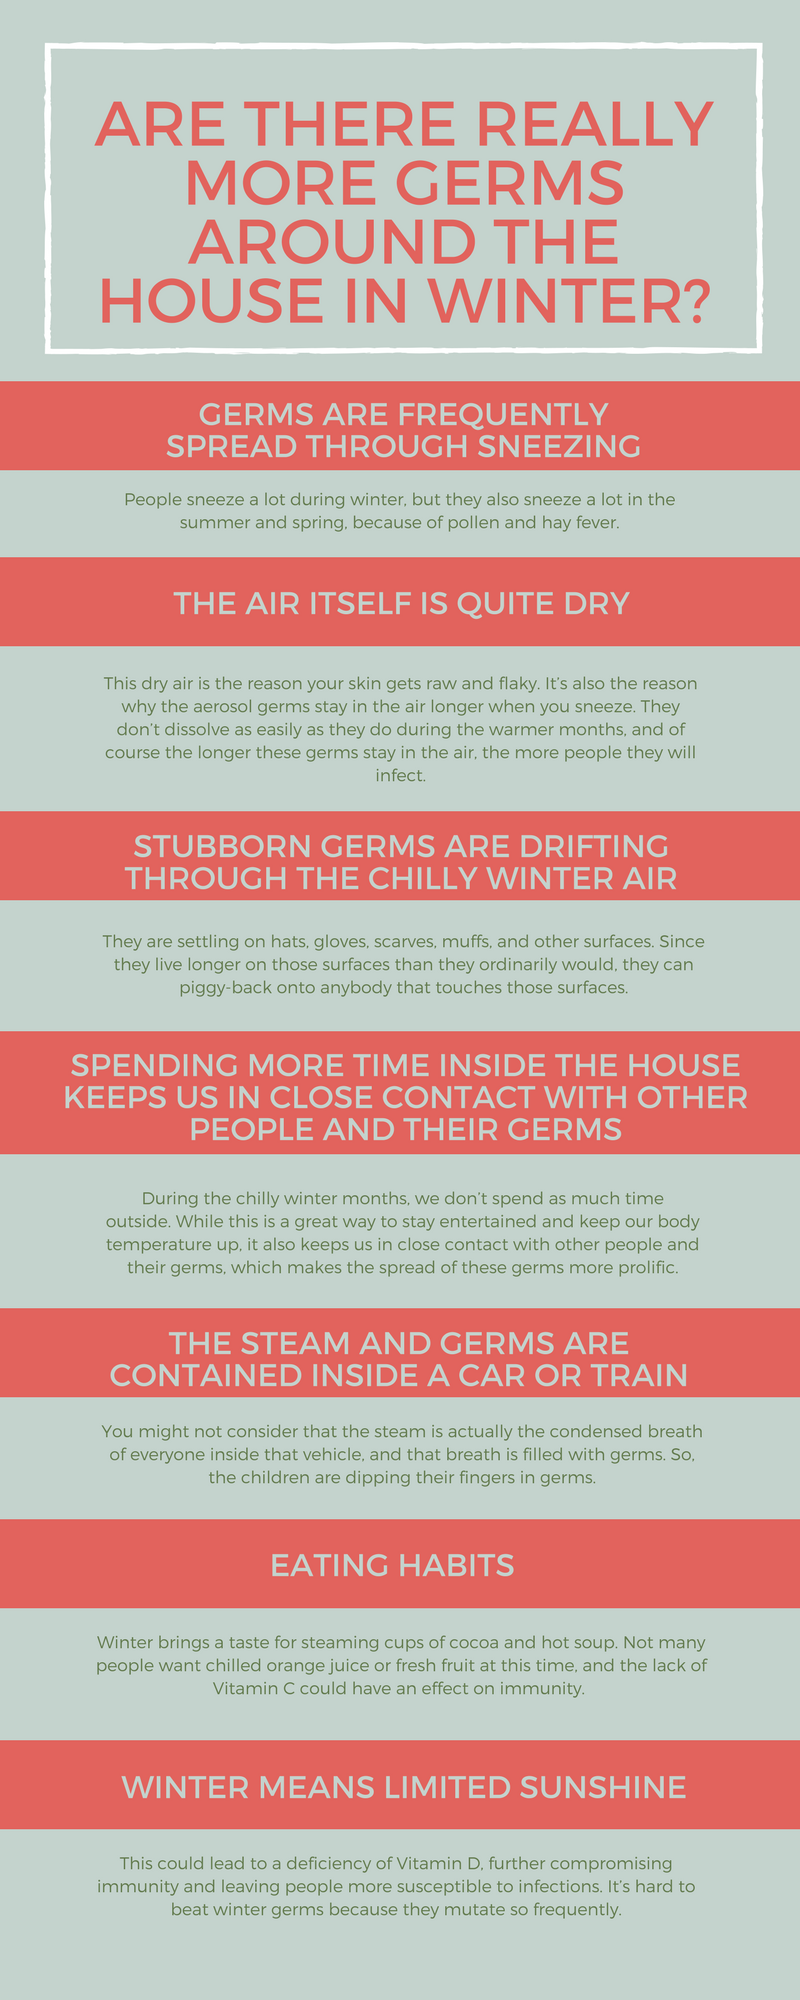 Are there really more germs around the house in Winter